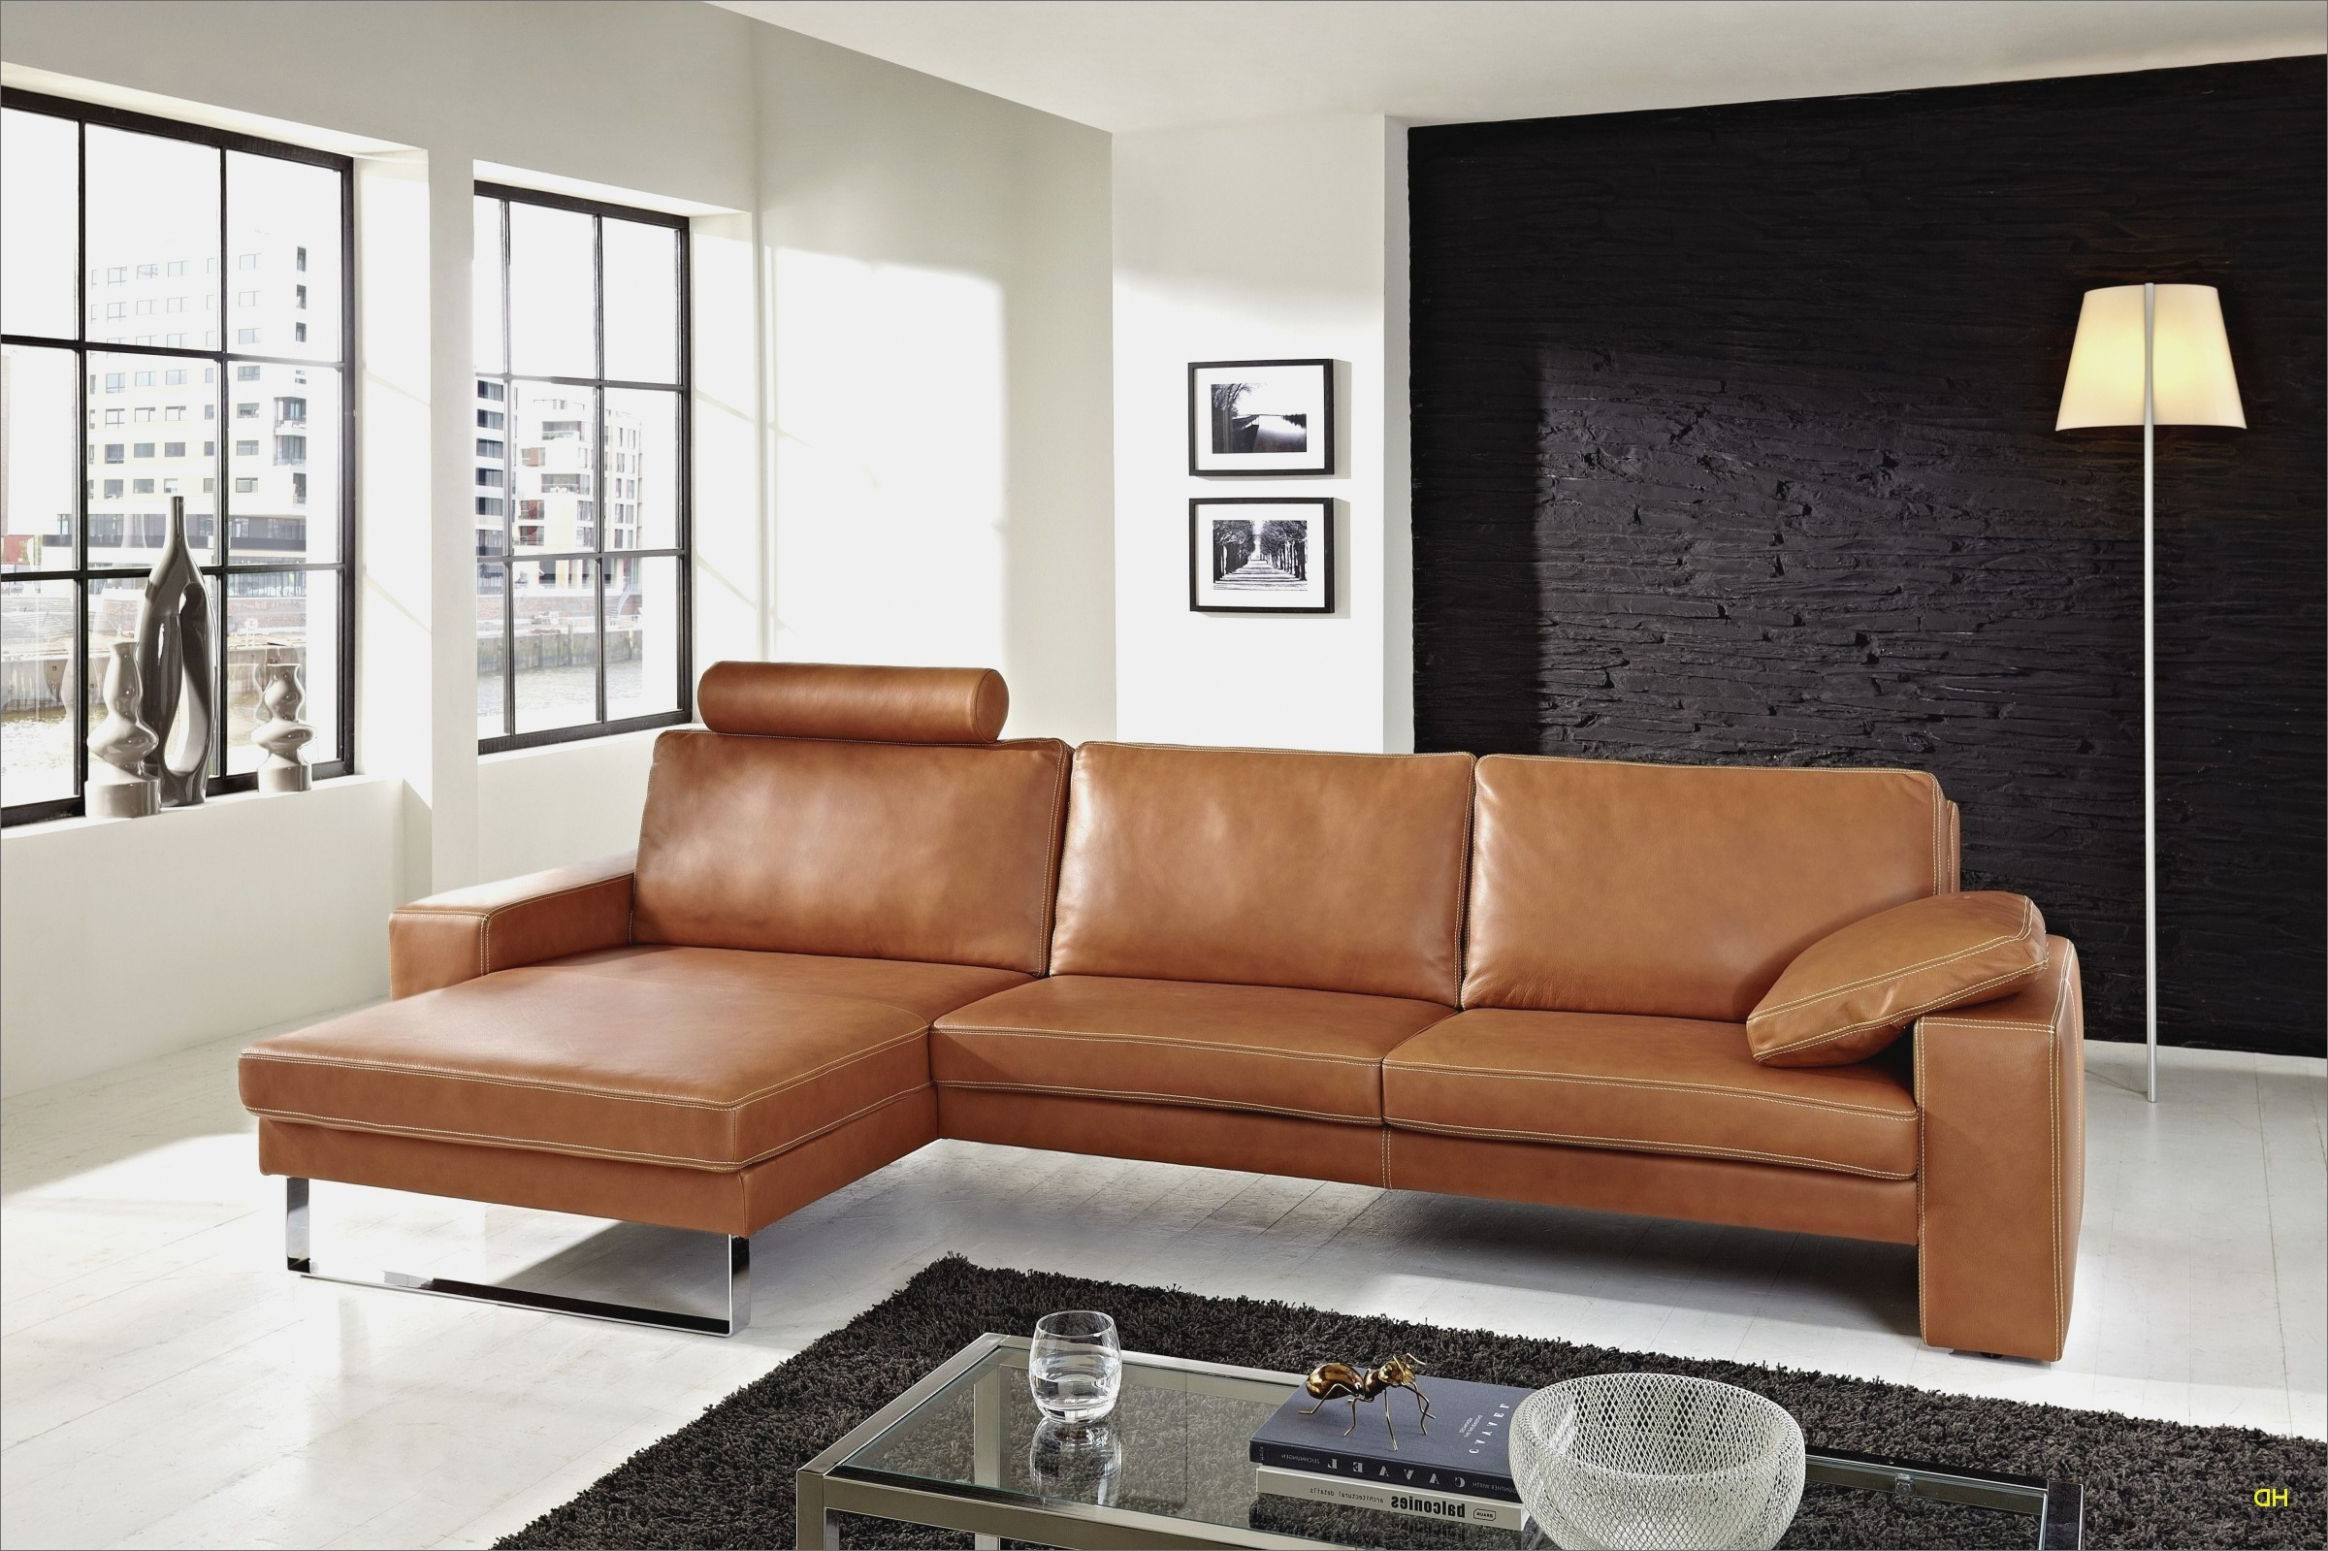 Outlet sofas Online U3dh sofas Baratos Online Hermoso Coleccià N sofa Outlet Hannover Yct